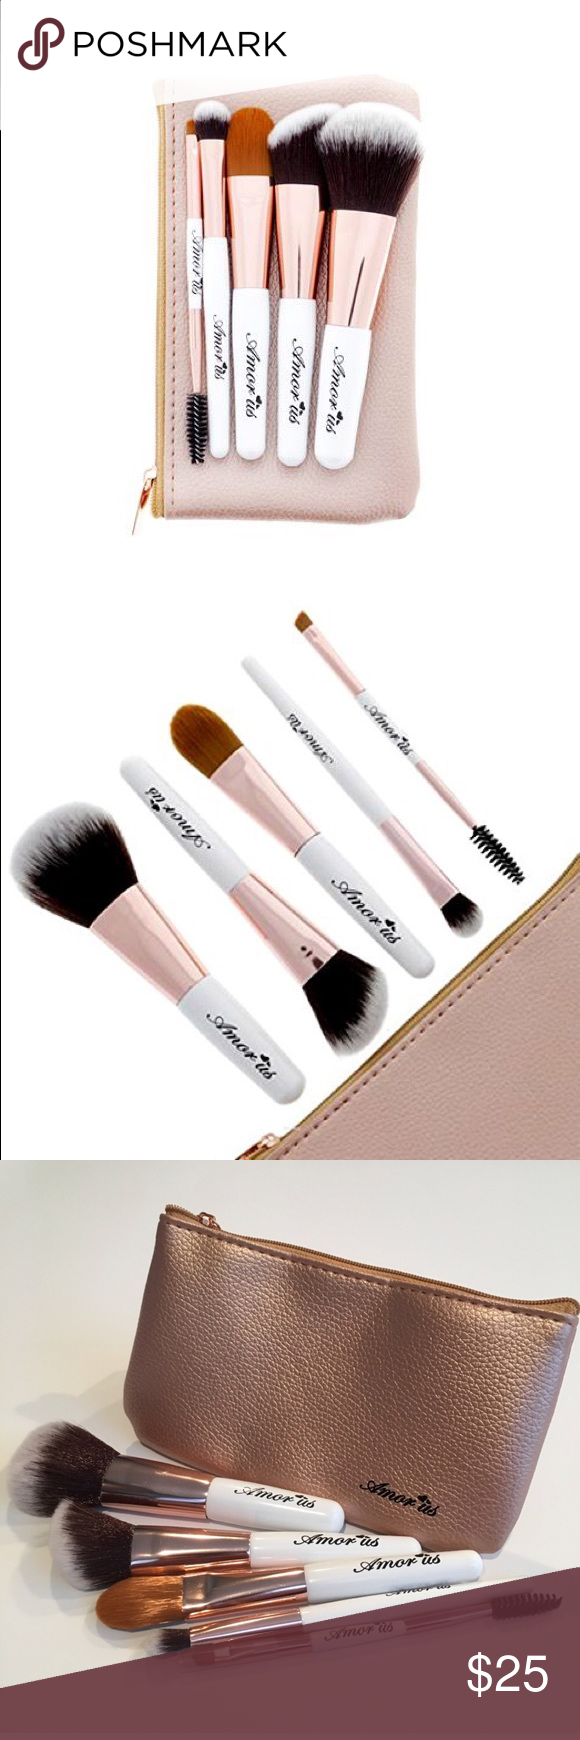 Vegan Pettit Travel essential Makeup Brush set 5-Piece Set Petite Travel Essentials Makeup Brush Set with Pouch Cruelty Free & Vegan Soft & Dense Synthetic Fibers Amorus USA  This 5-Piece Set Petite Travel Essentials Makeup Brush Set will give flawless makeup while on the go. It features soft synthetic, cruelty free and vegan brushes accompanied by an adorable and snug rose gold brush pouch perfect for travel. amor us Makeup Brushes & Tools